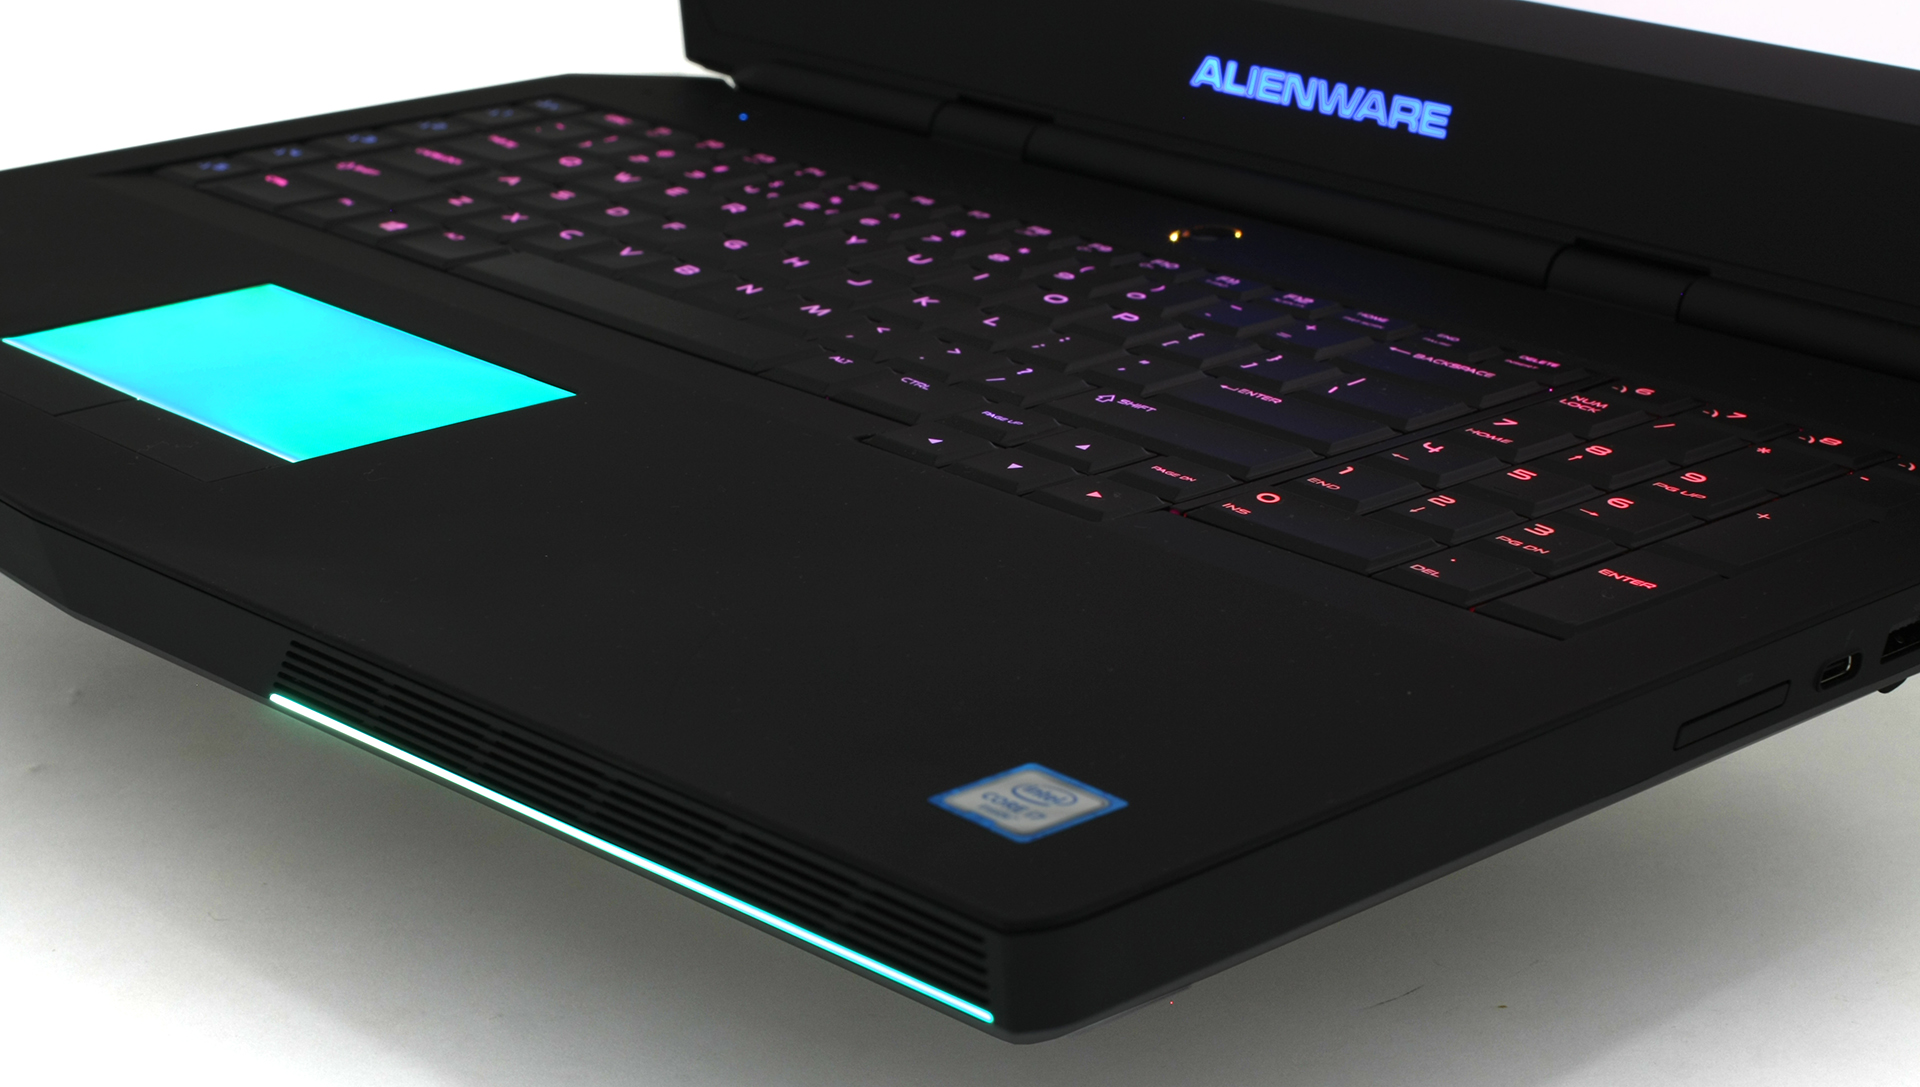 Alienware 17 R3 Late 2015 Review When You Want The